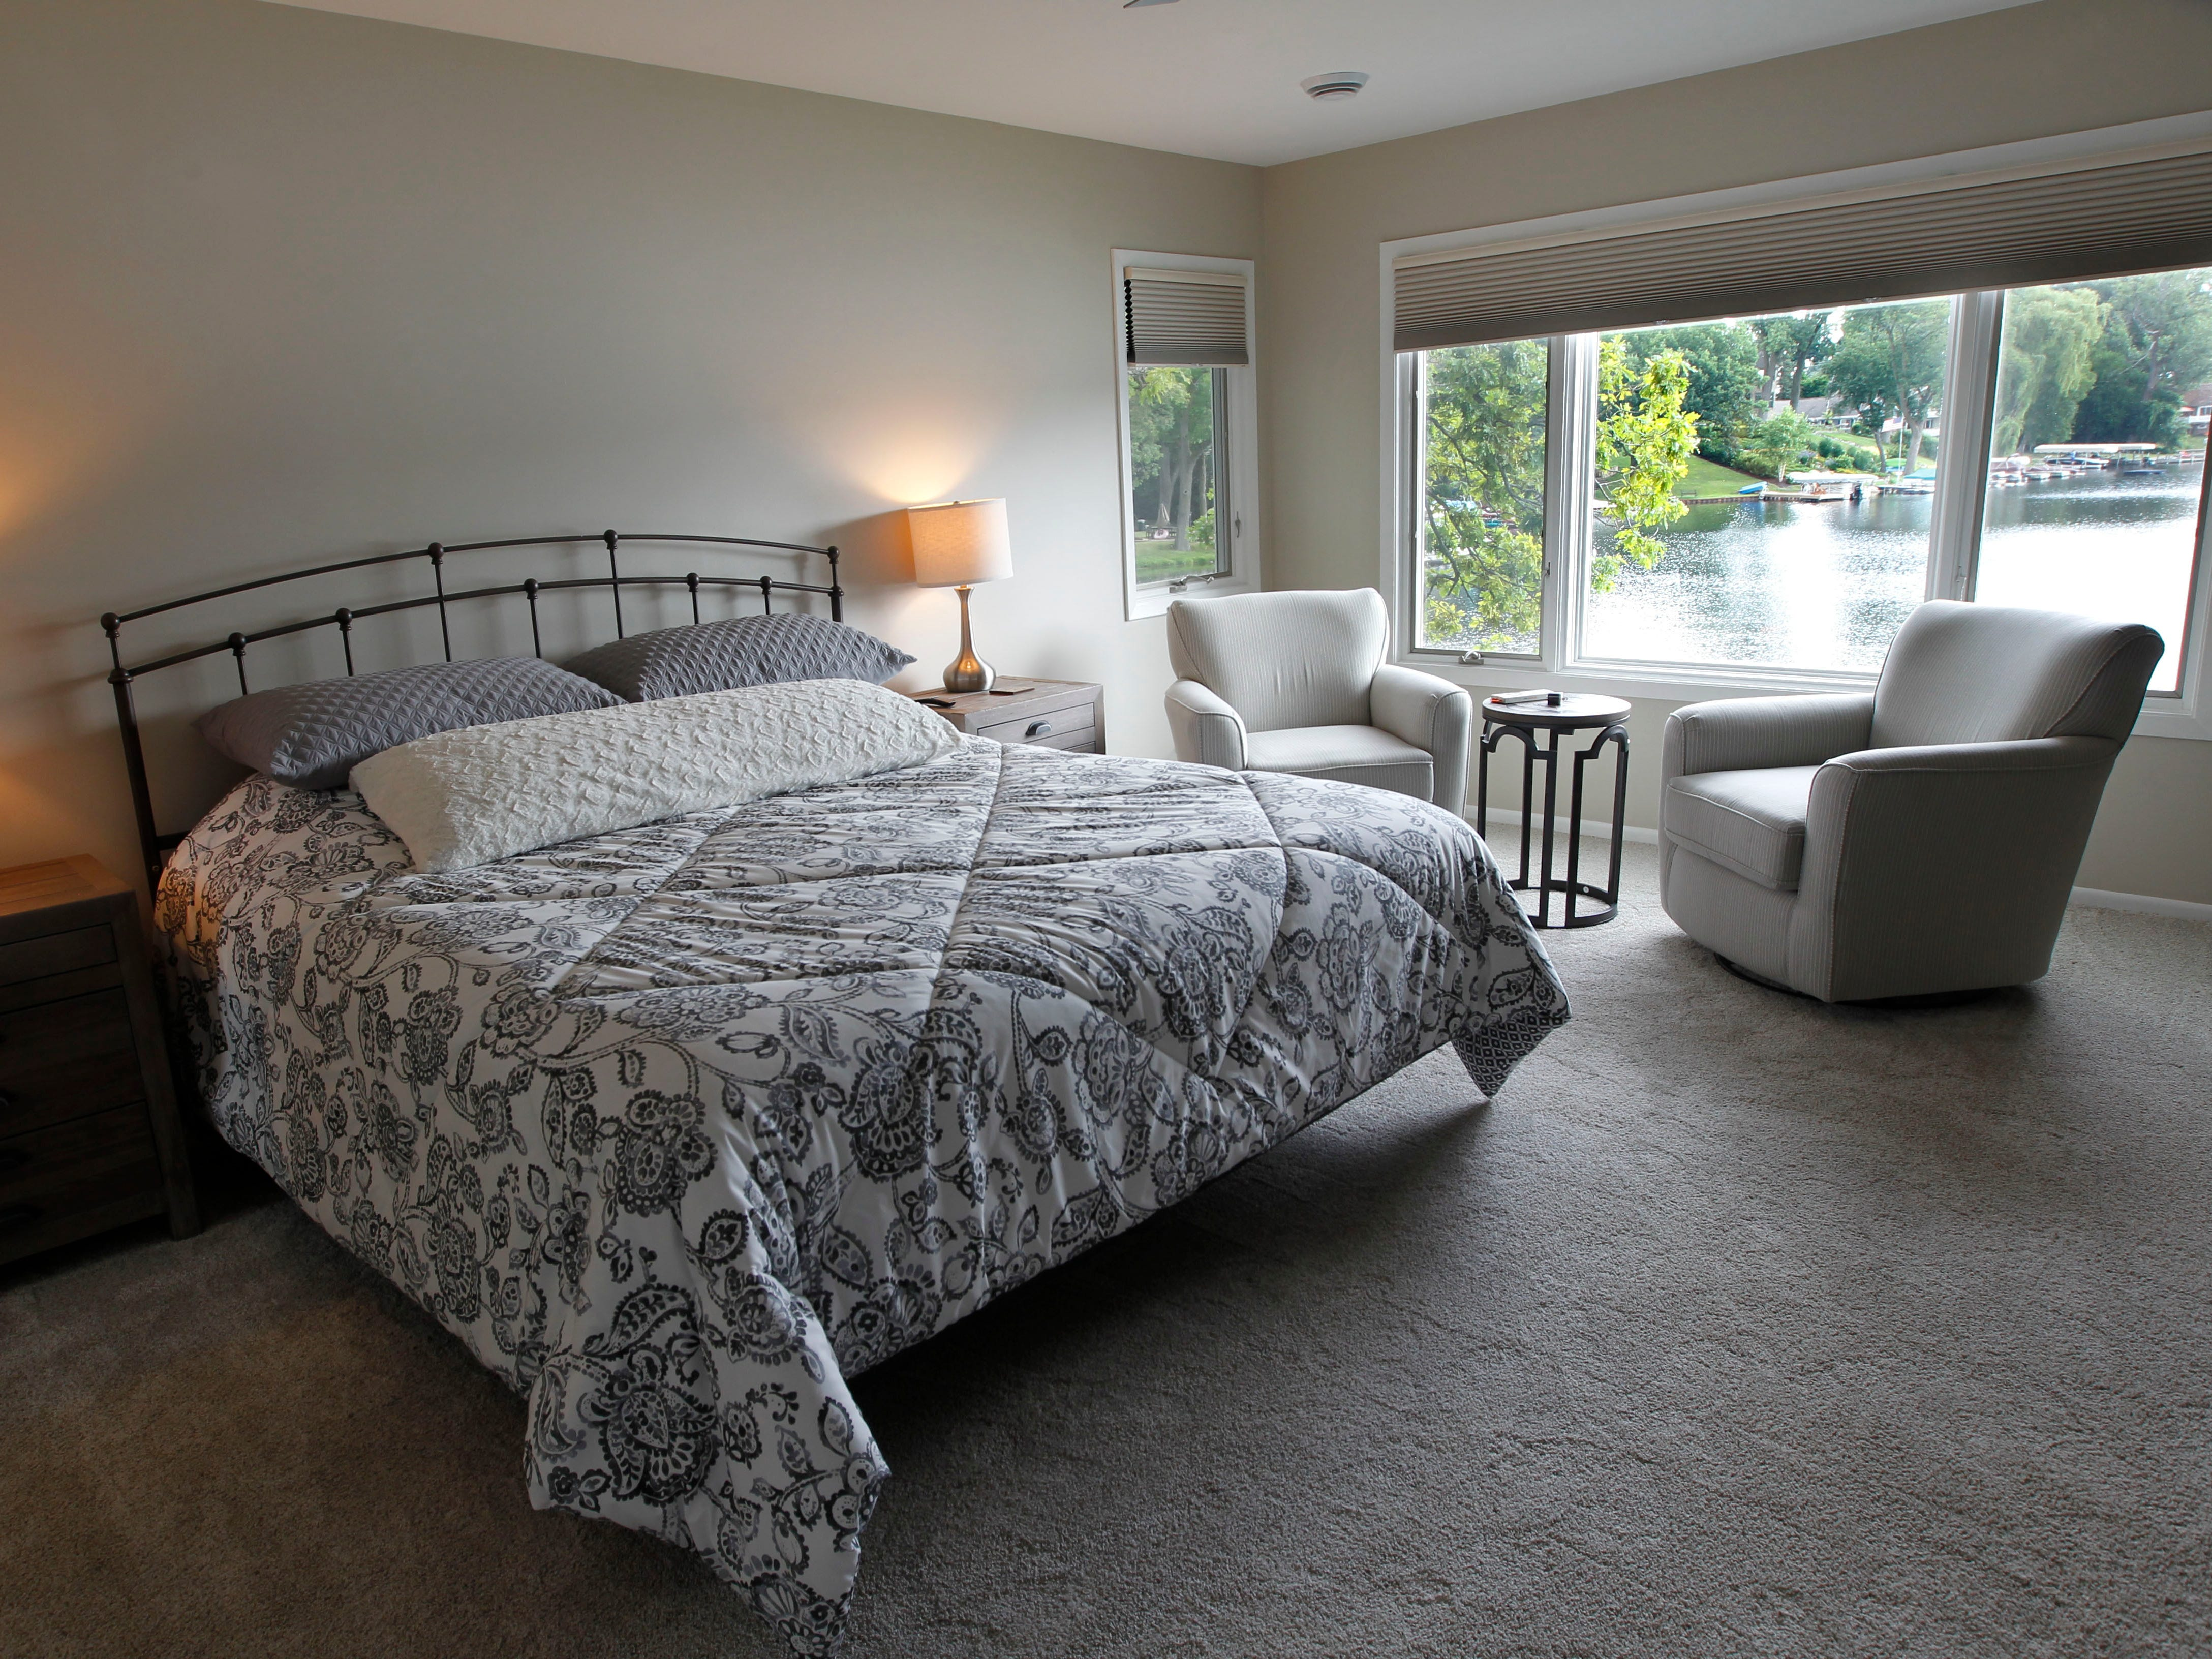 The guest room in the home has large windows for viewing the lake.